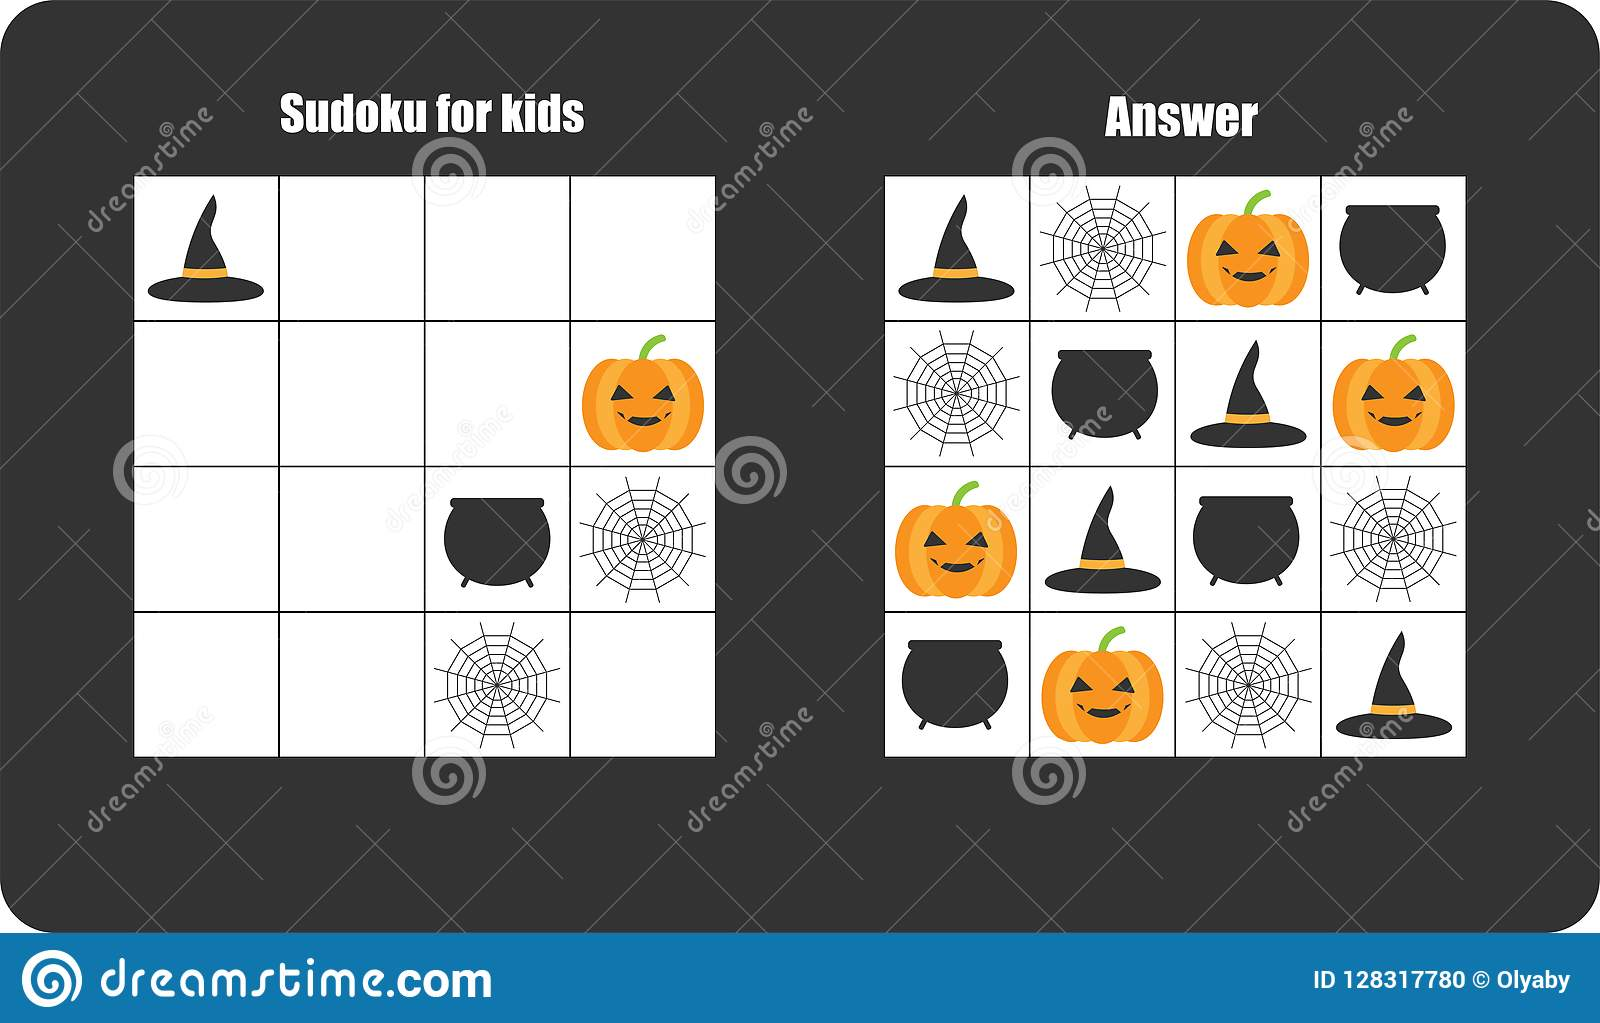 Sudoku Game With Halloween Pictures Cobweb Pumpkin For